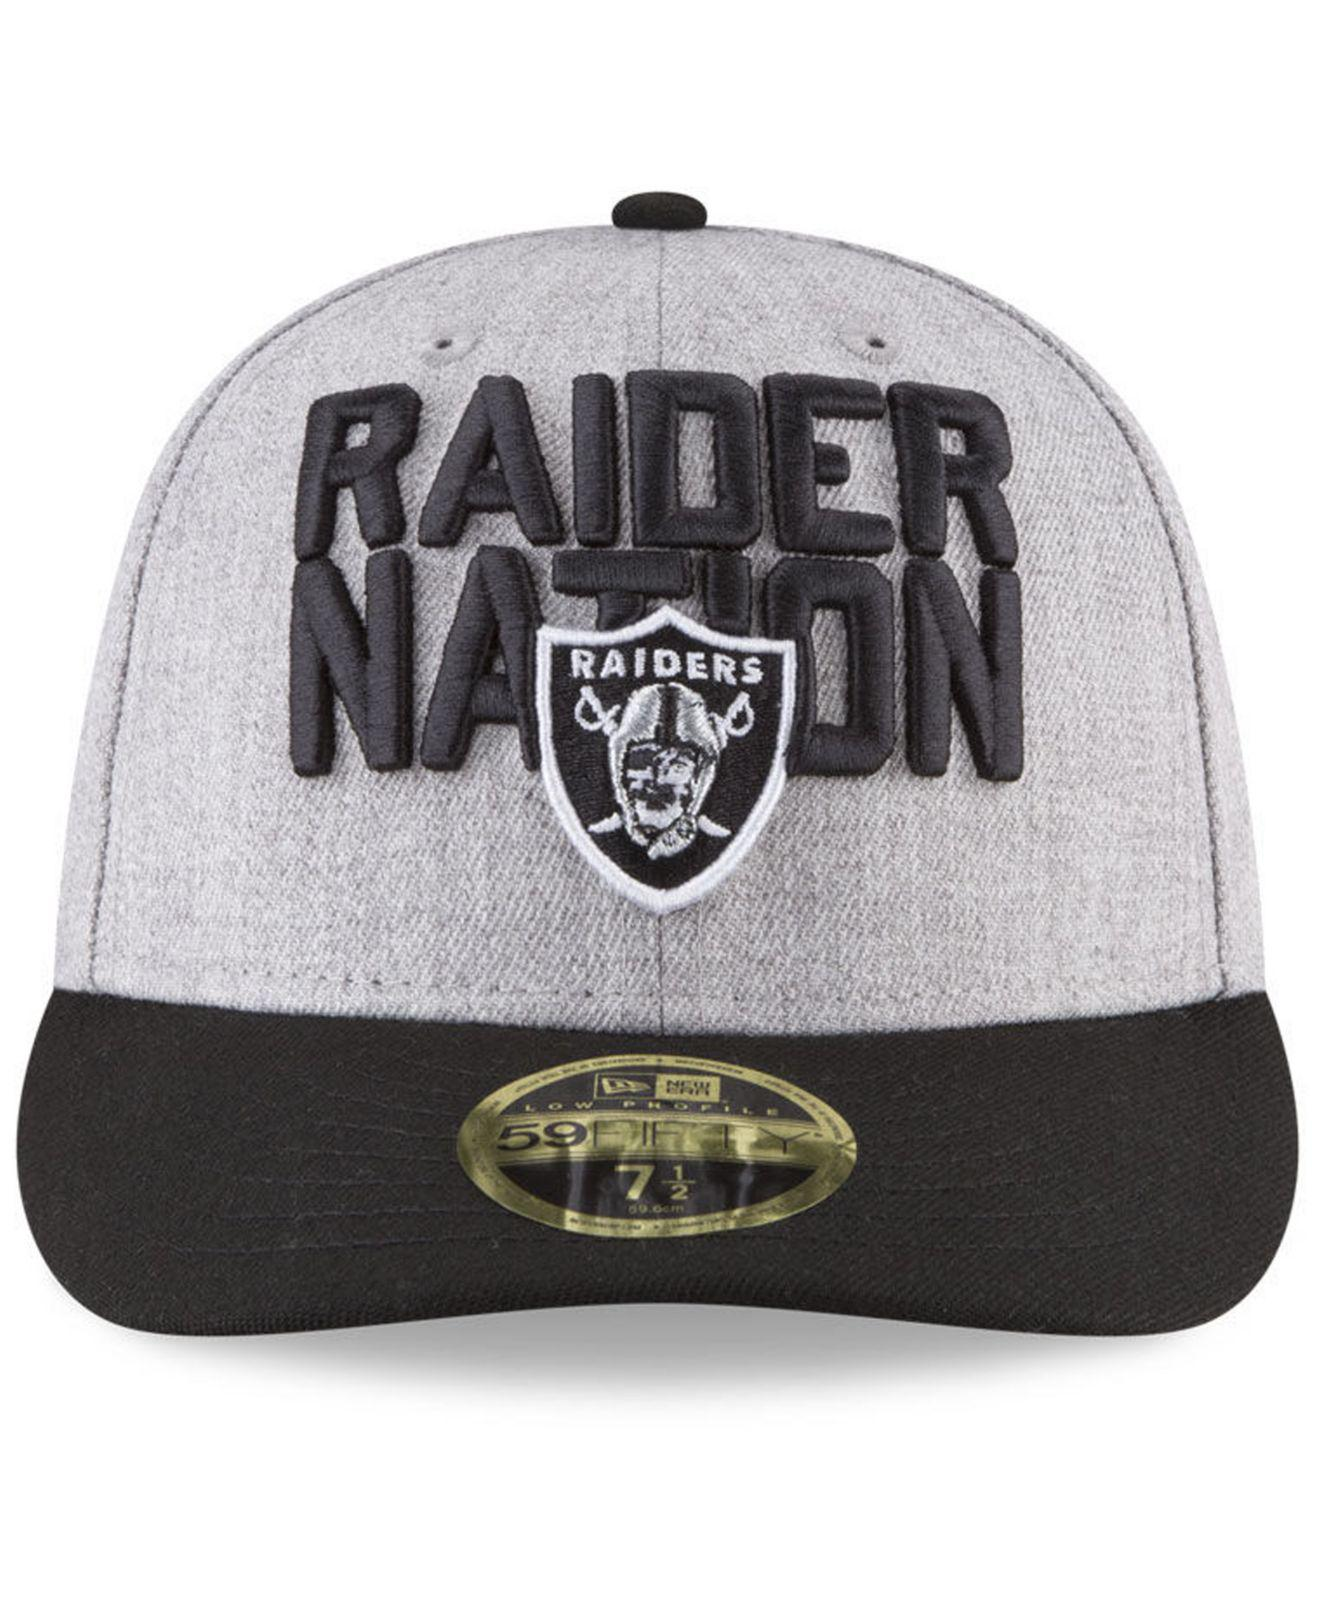 detailed pictures 9256b 8b6f9 Lyst - KTZ Oakland Raiders Draft Low Profile 59fifty Fitted Cap in Black  for Men